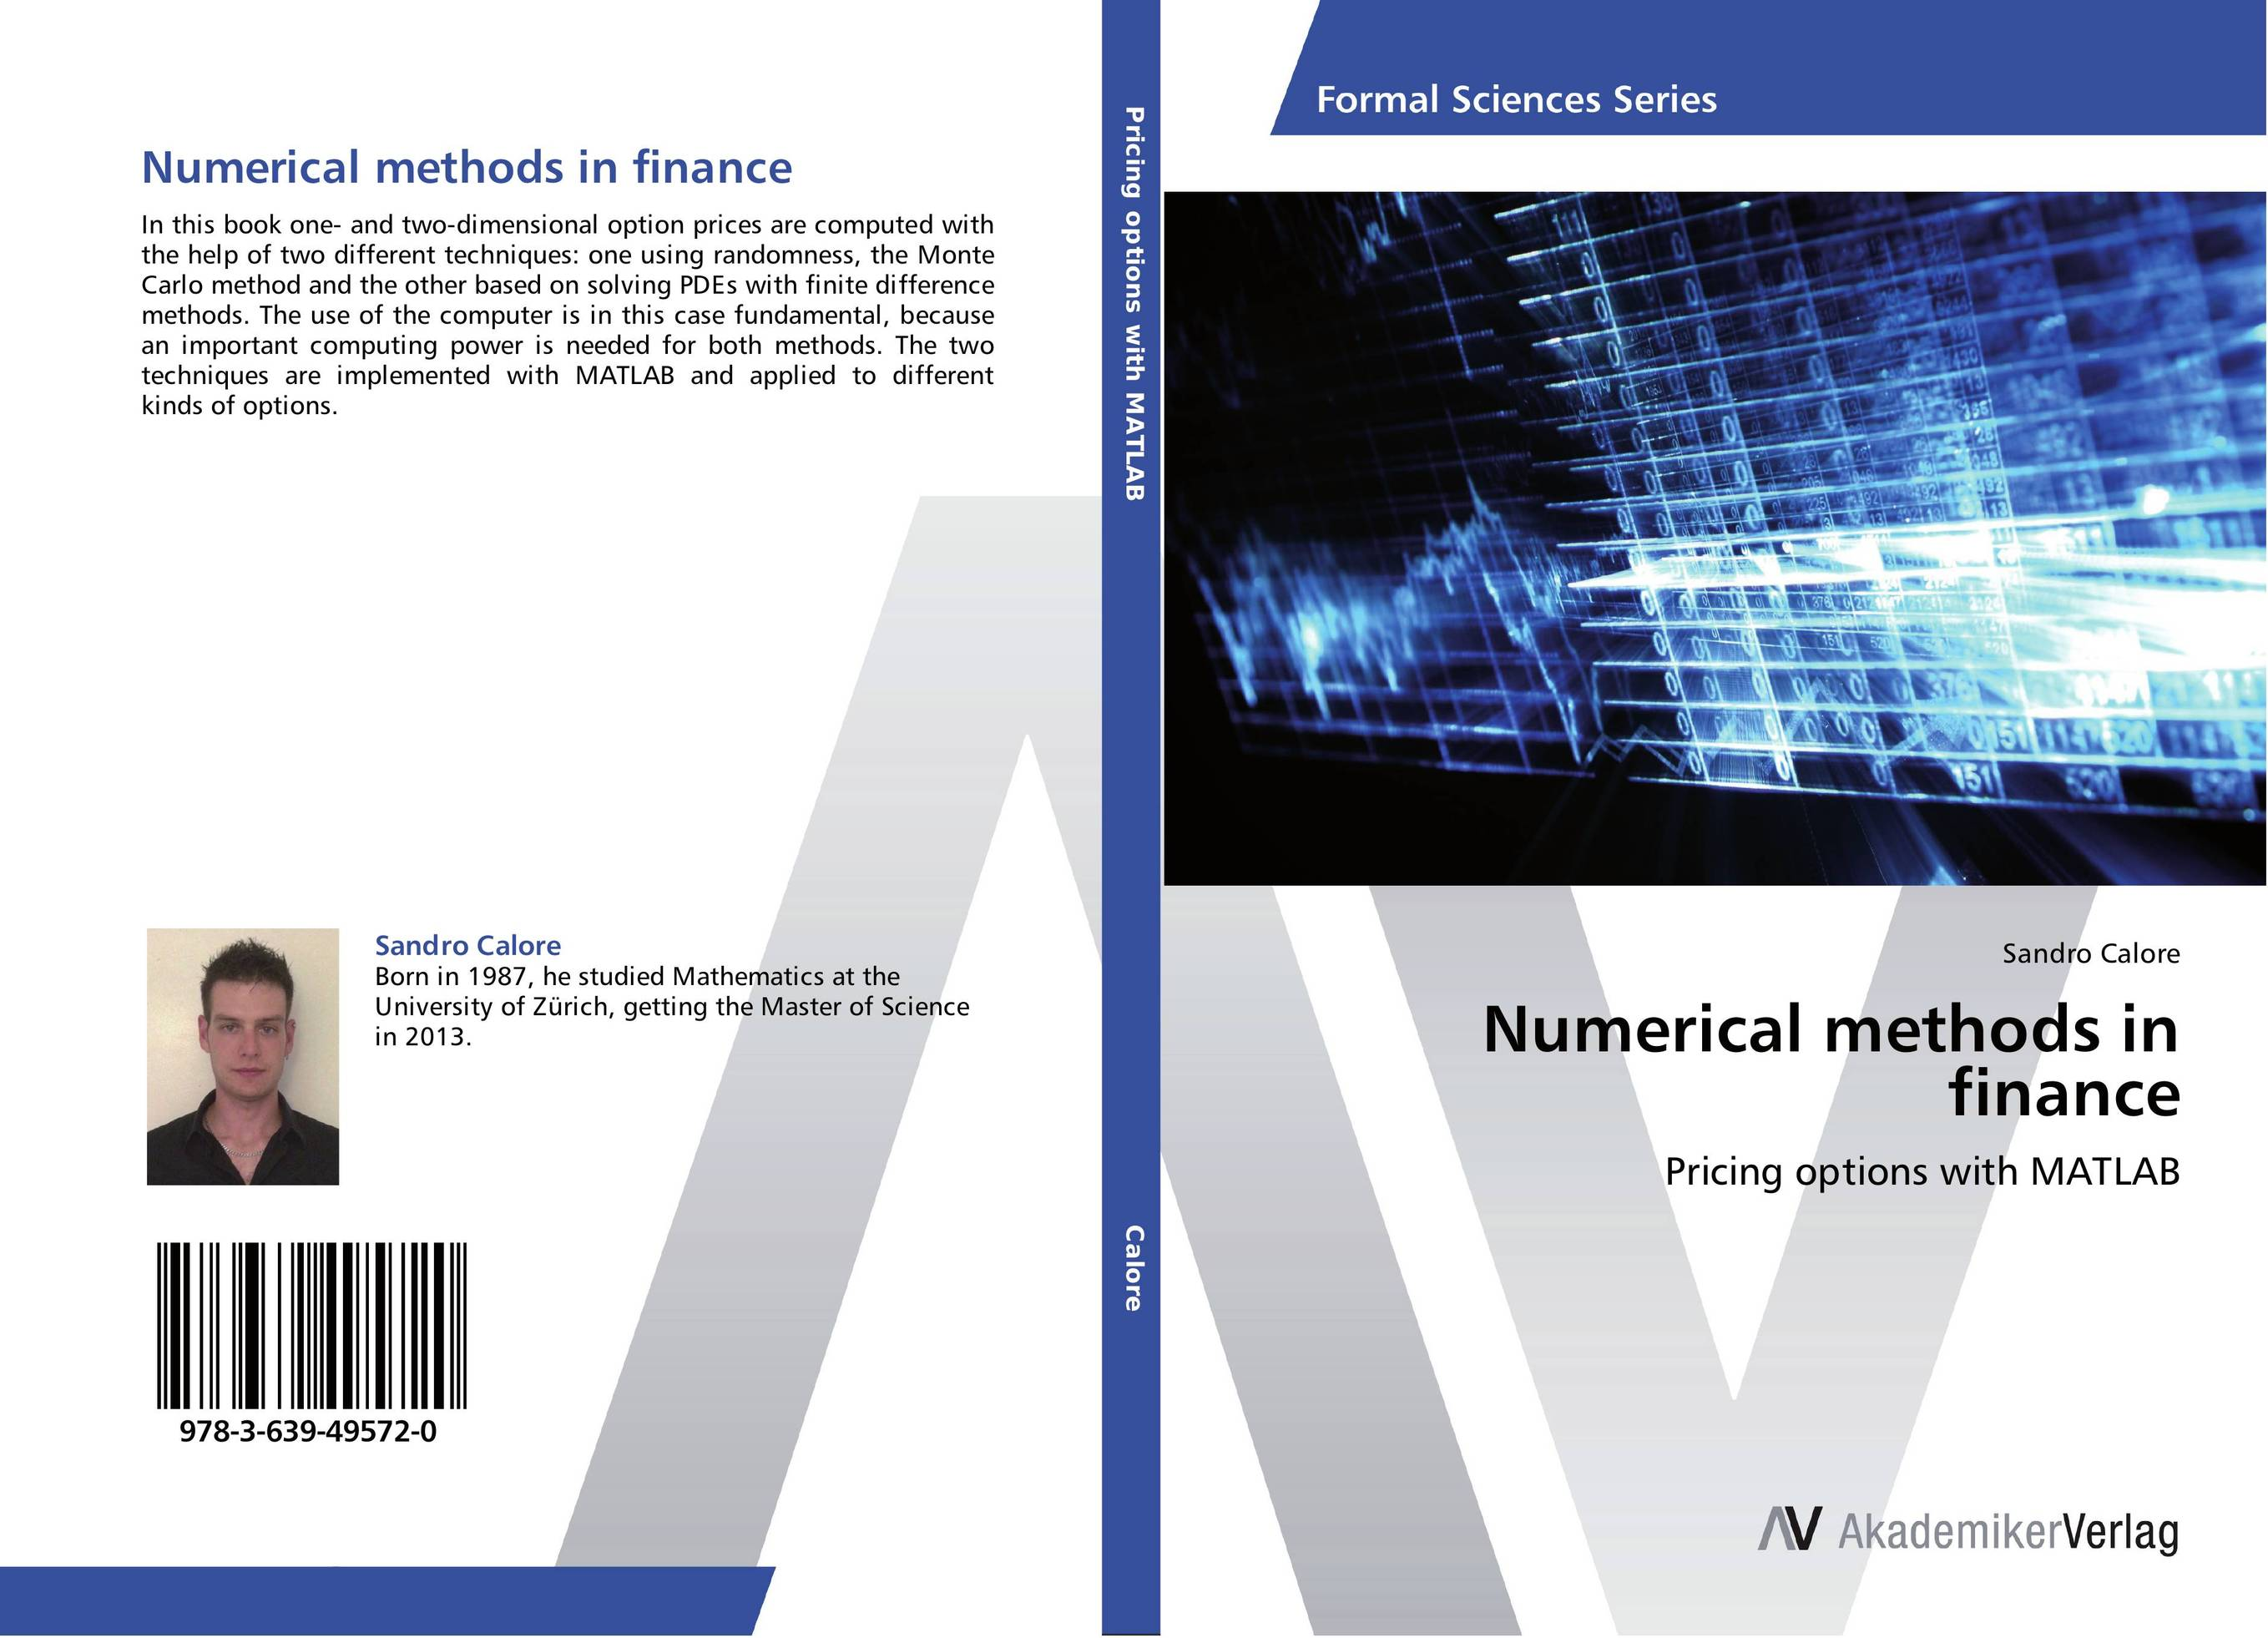 Numerical methods in finance monte carlo techniques for electron radiotherapy